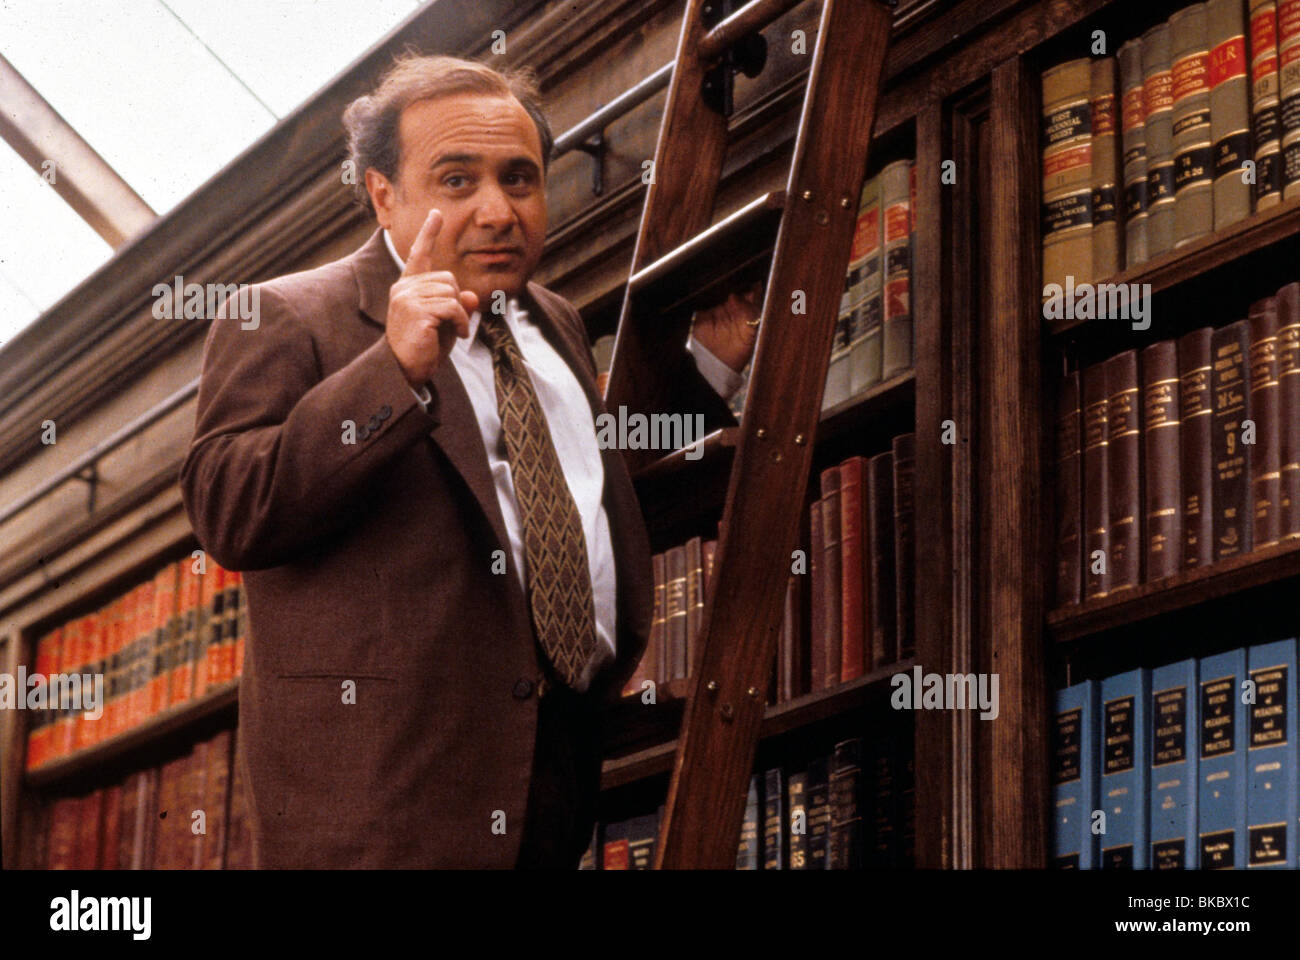 THE WAR OF THE ROSES (1989) DANNY DEVITO WOR 017 - Stock Image